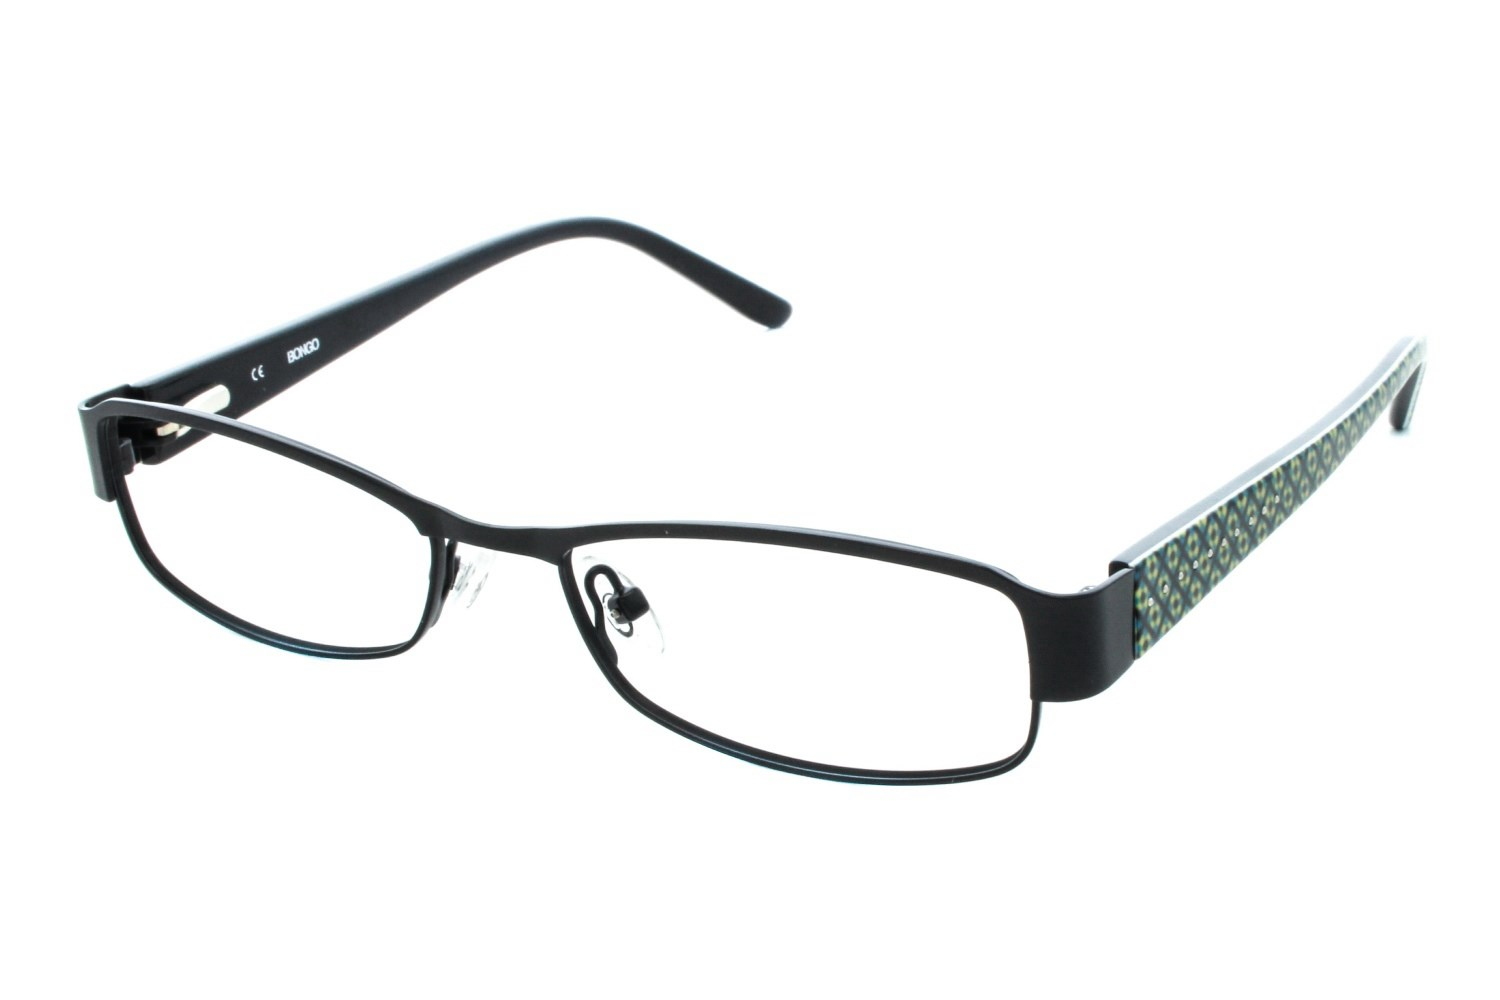 Bongo B Colleen Prescription Eyeglasses Frames